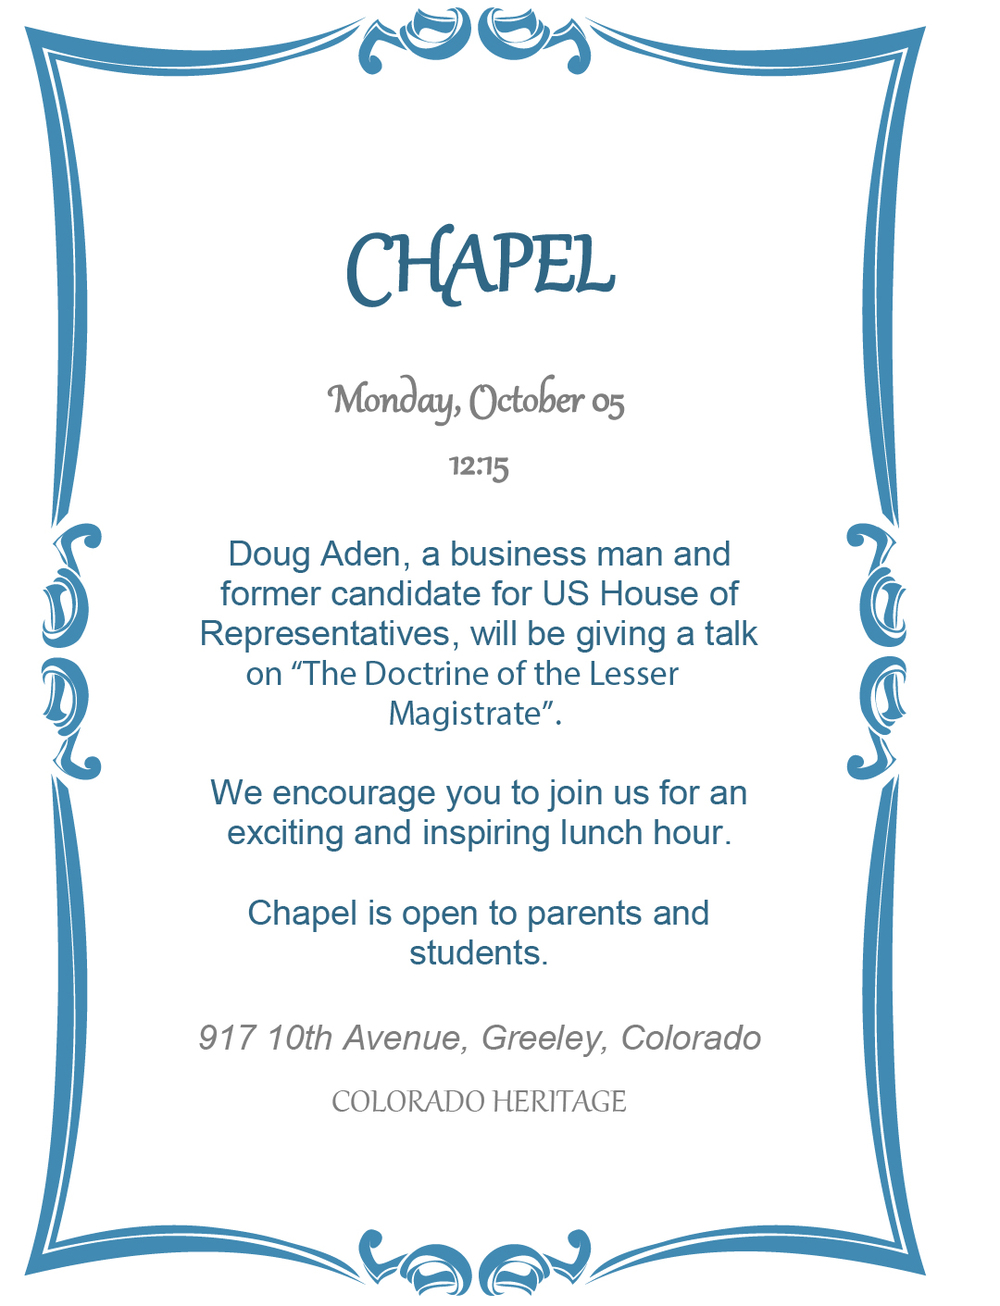 Chapel Invitation Fall 2015.jpg